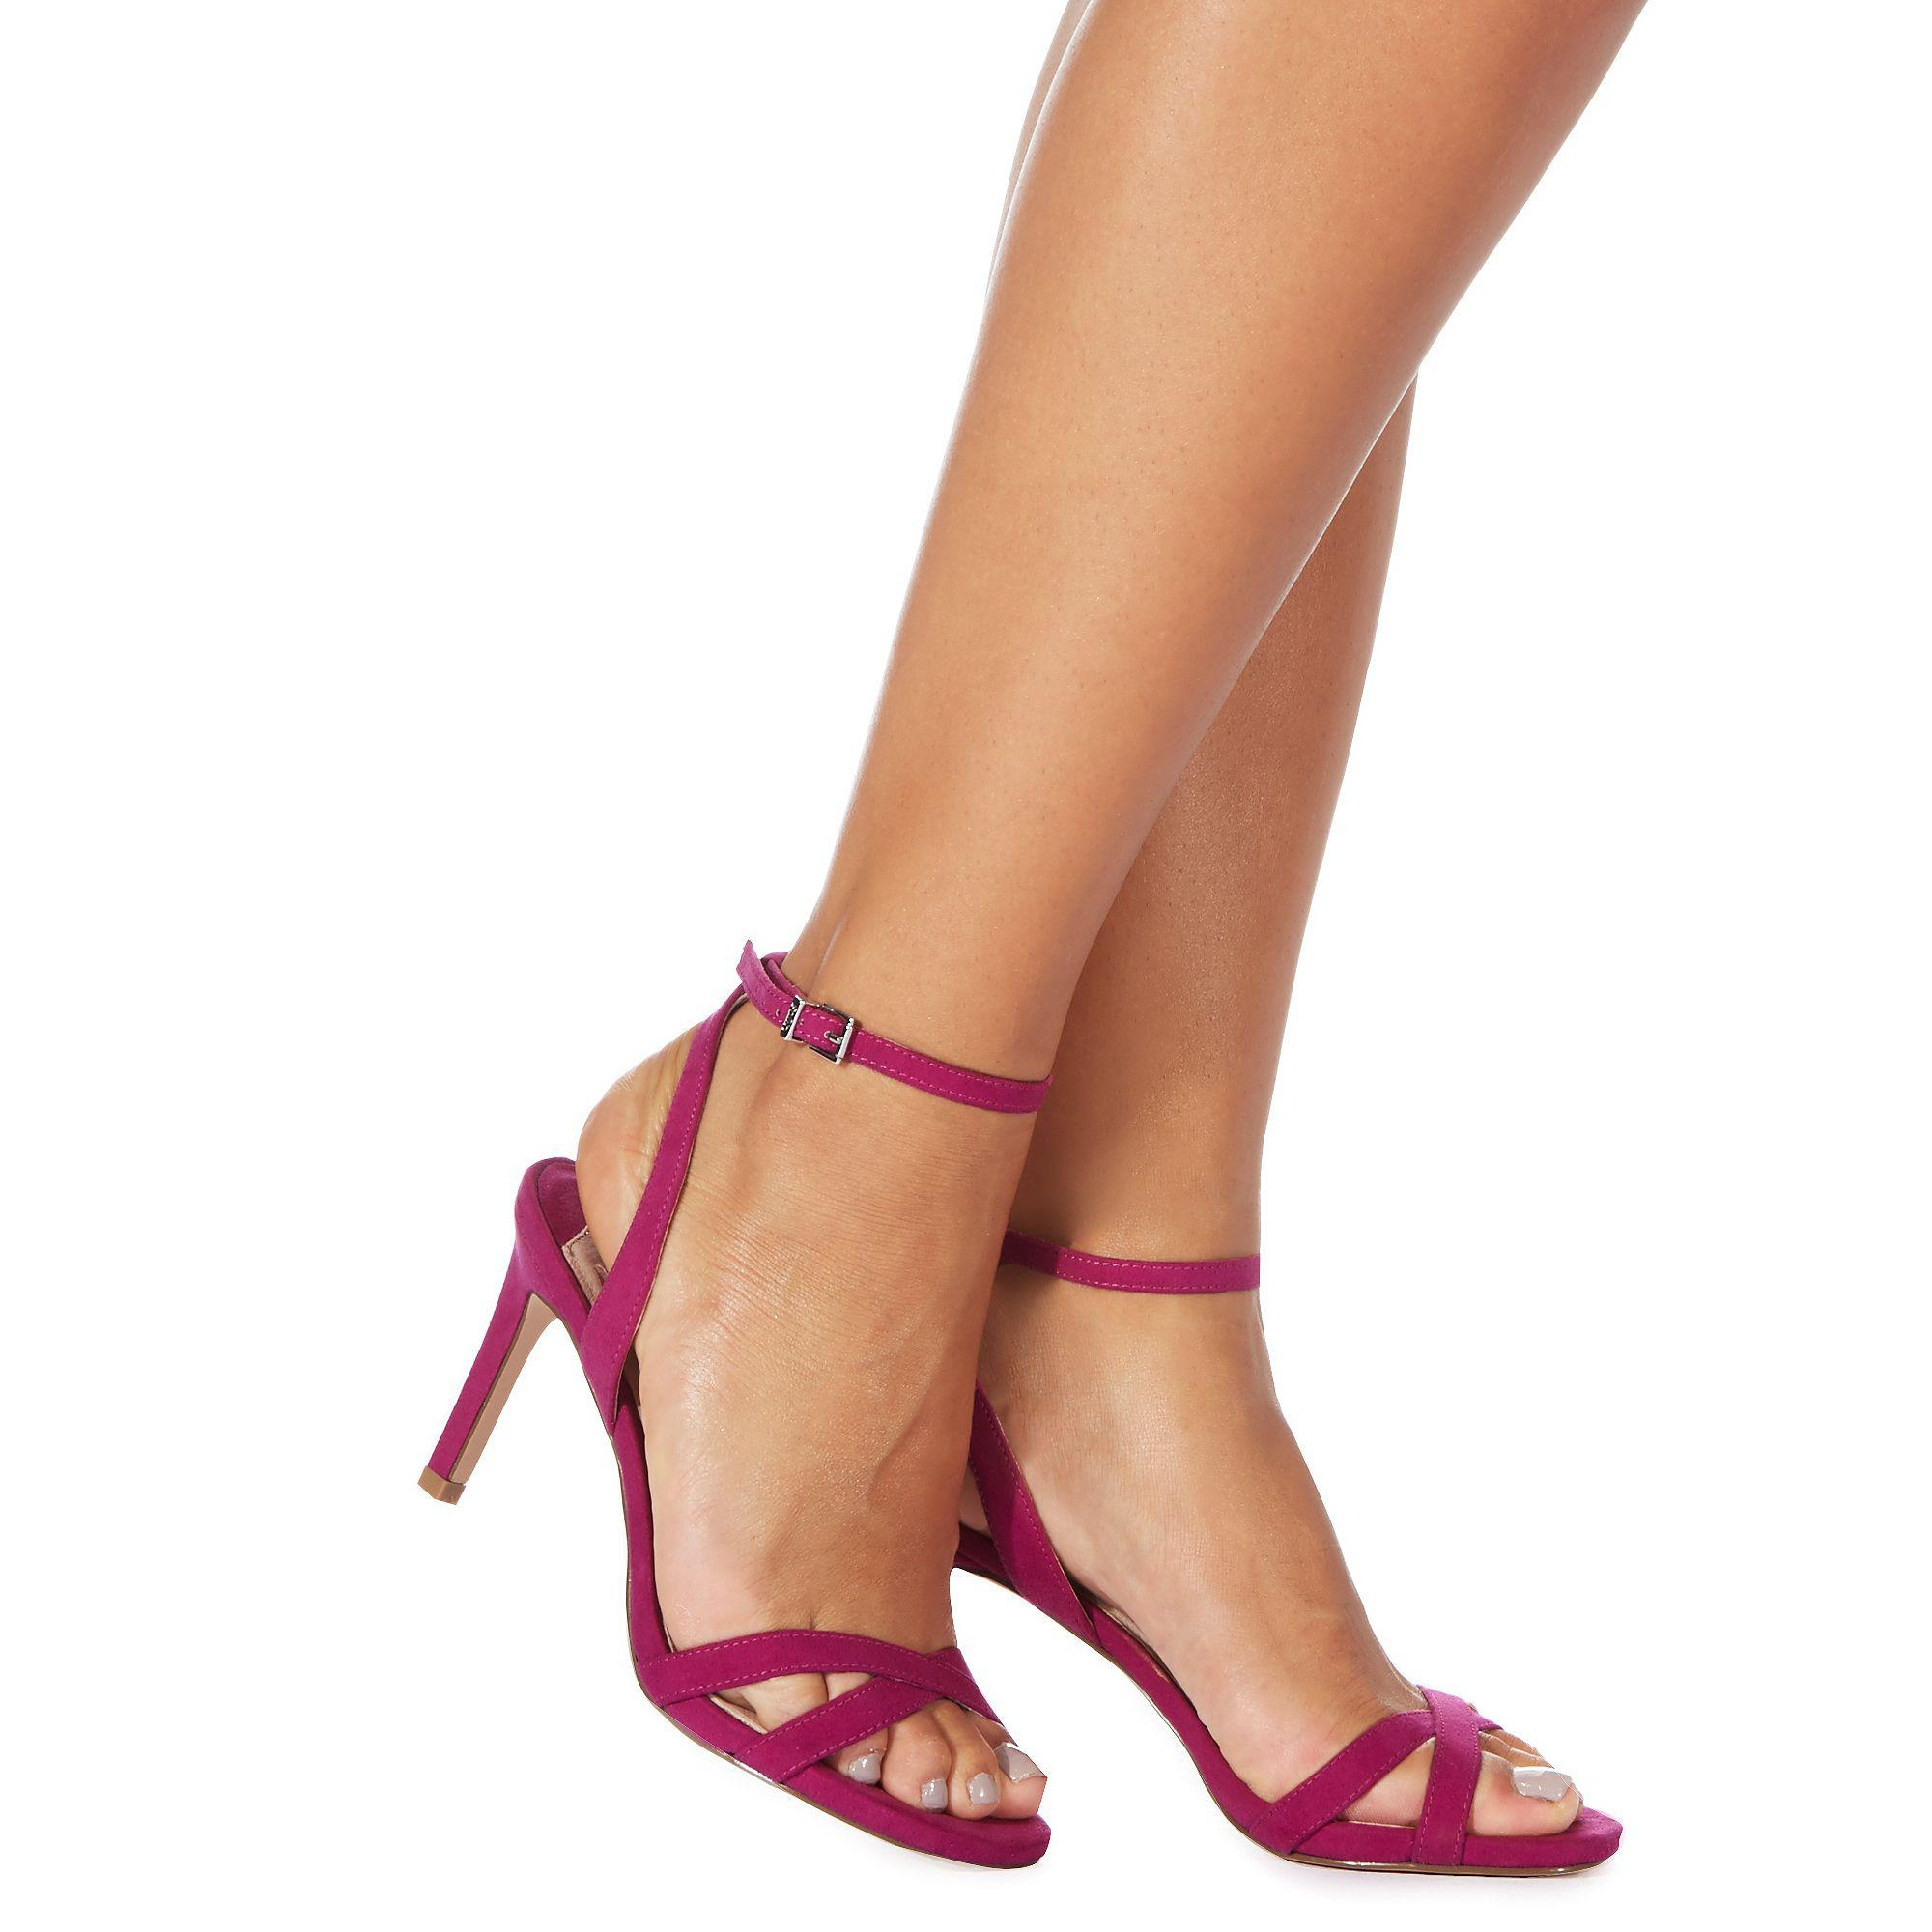 Pink 'Dodo' high stiletto heel ankle strap sandals official sale online reliable online CAgNj